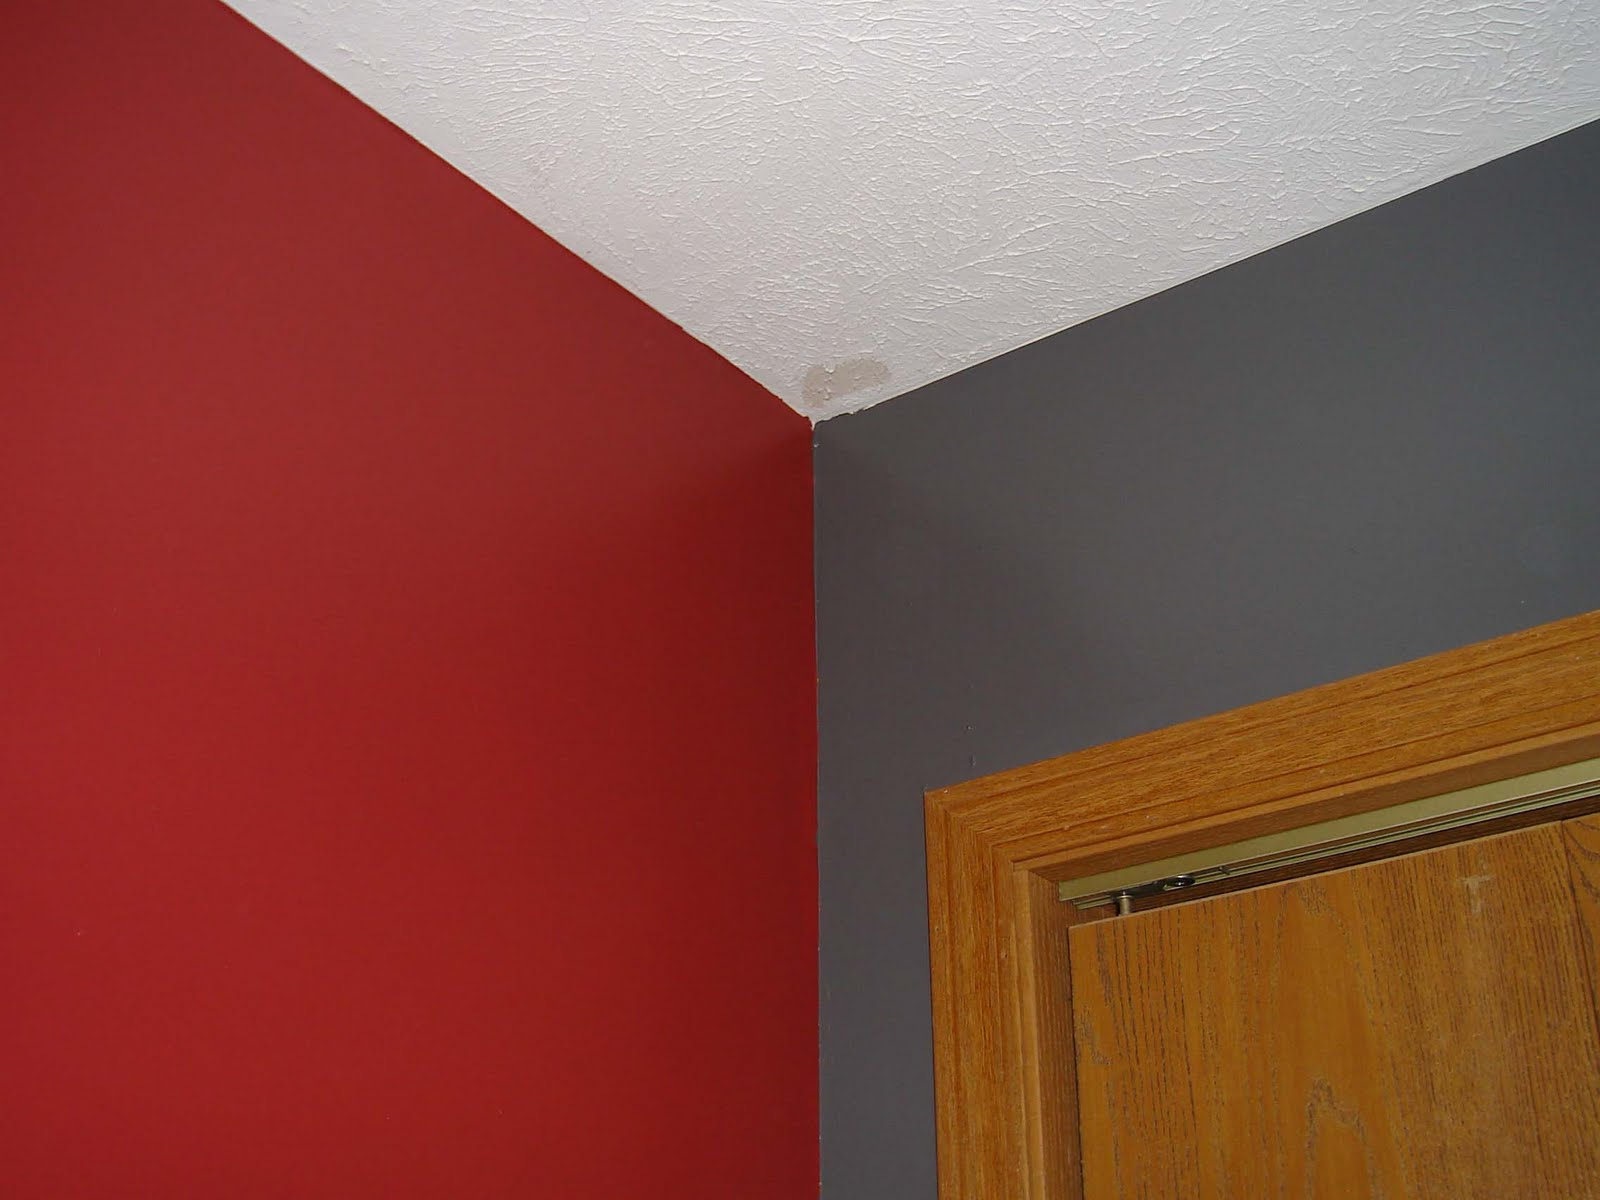 Better together bedroom makeover - Painting bedroom walls different colors ...